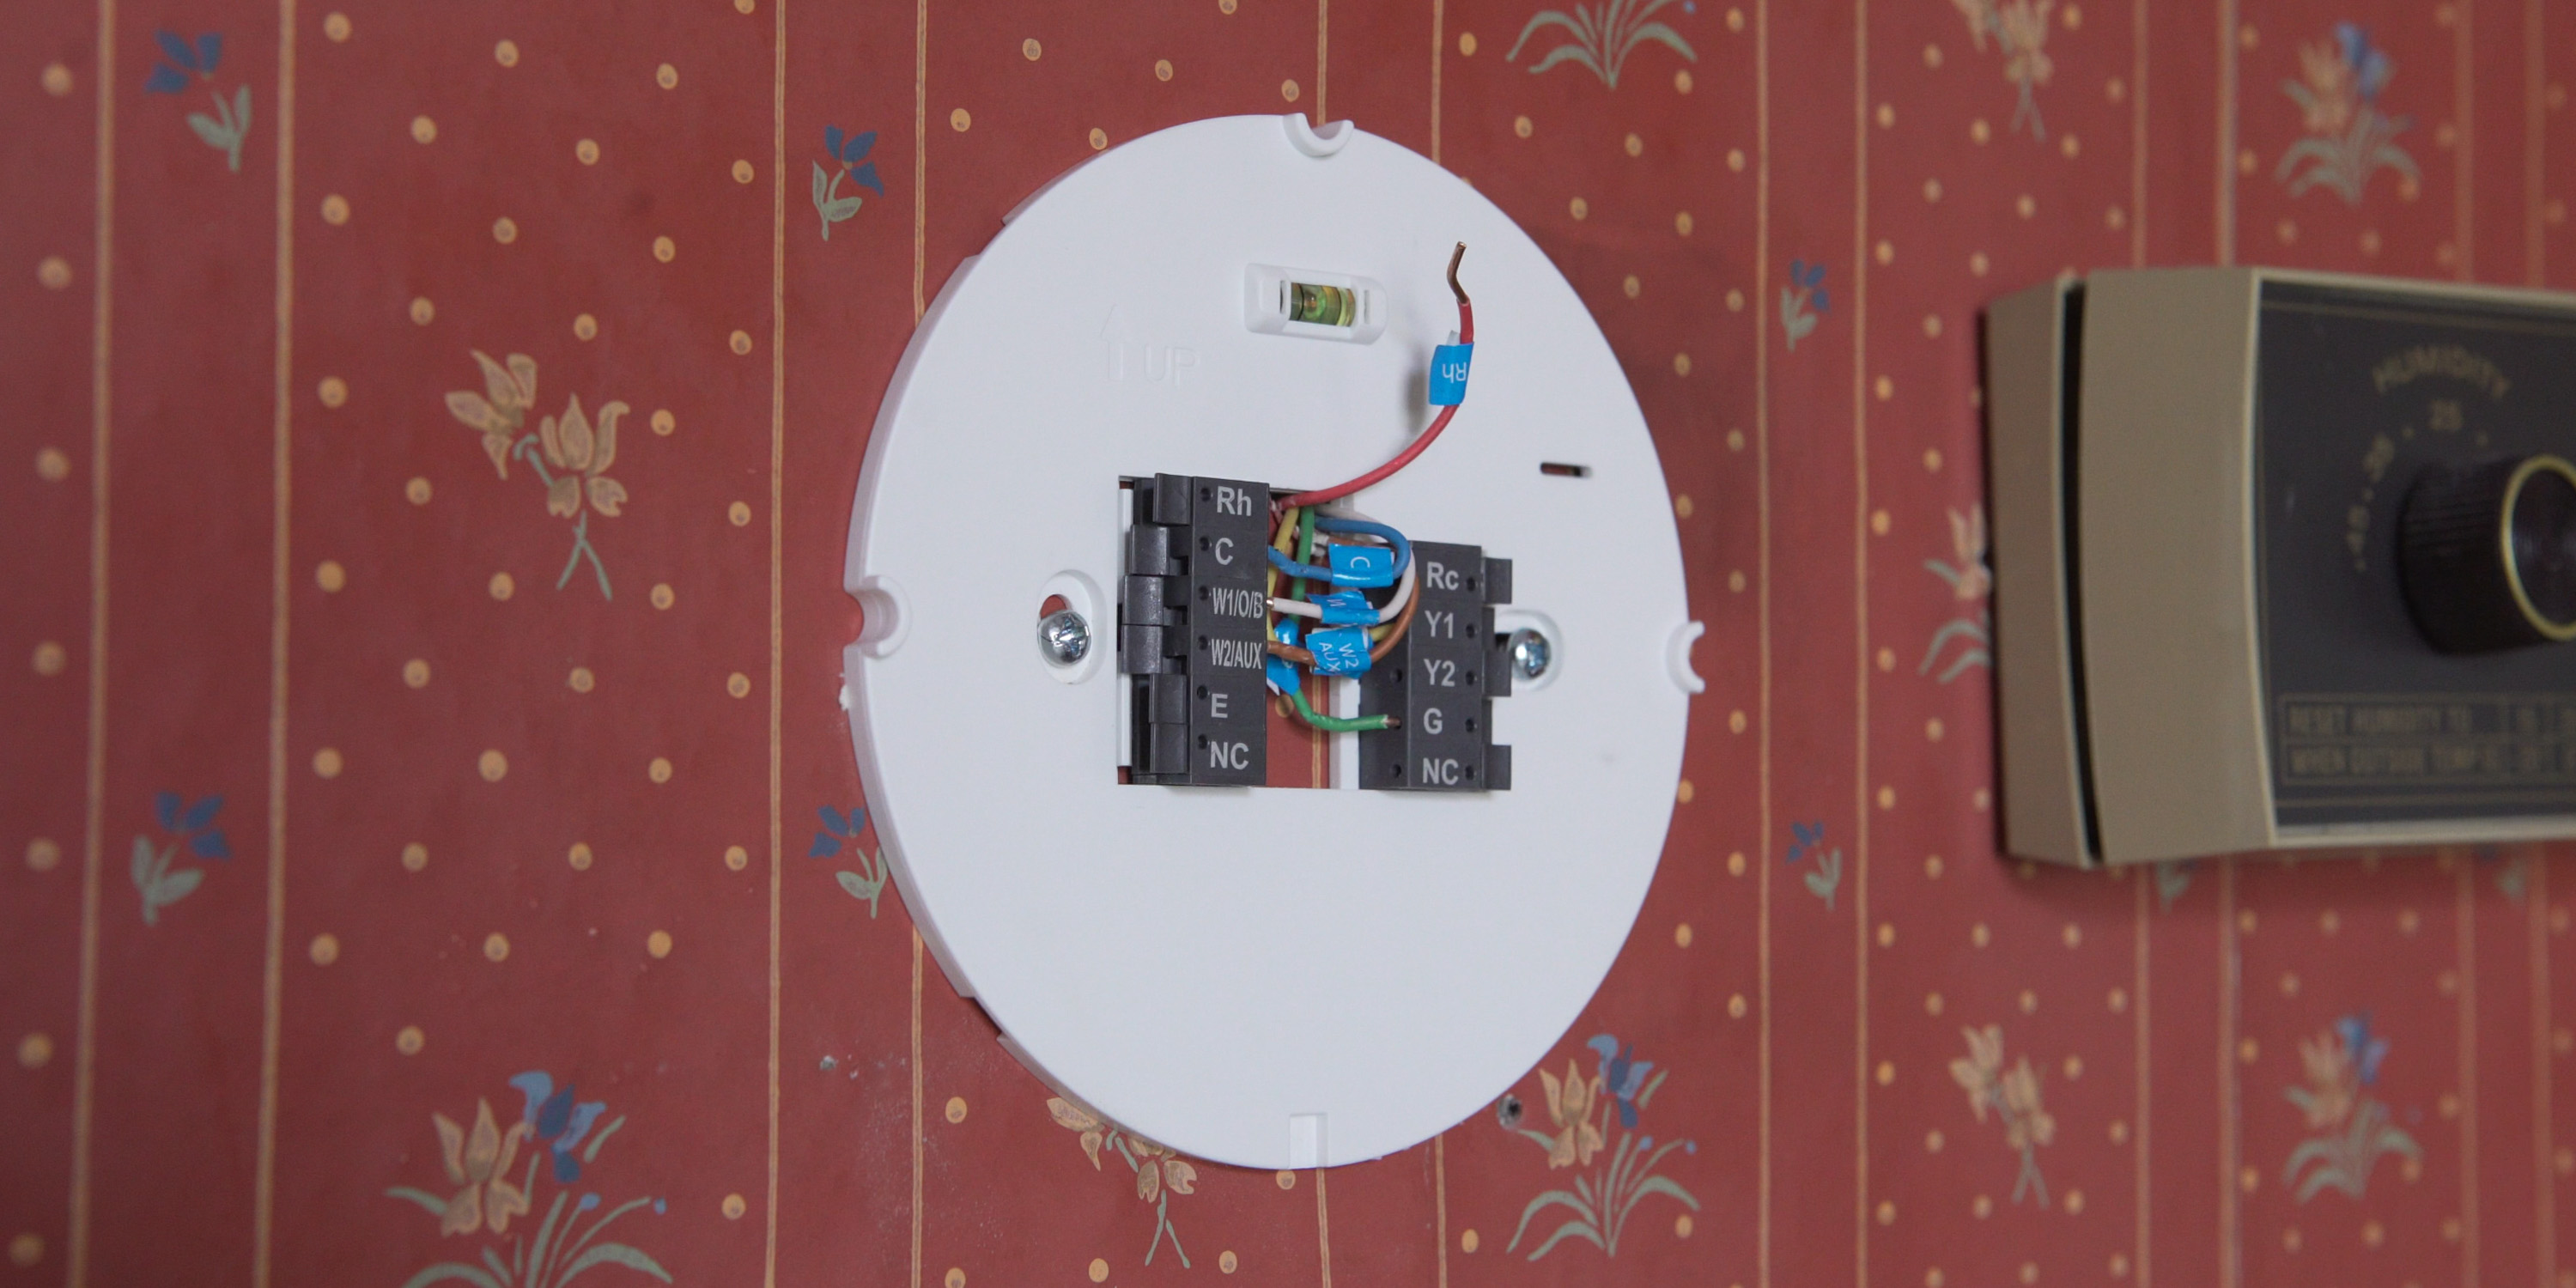 Installing the Momentum Meri Smart Thermostat